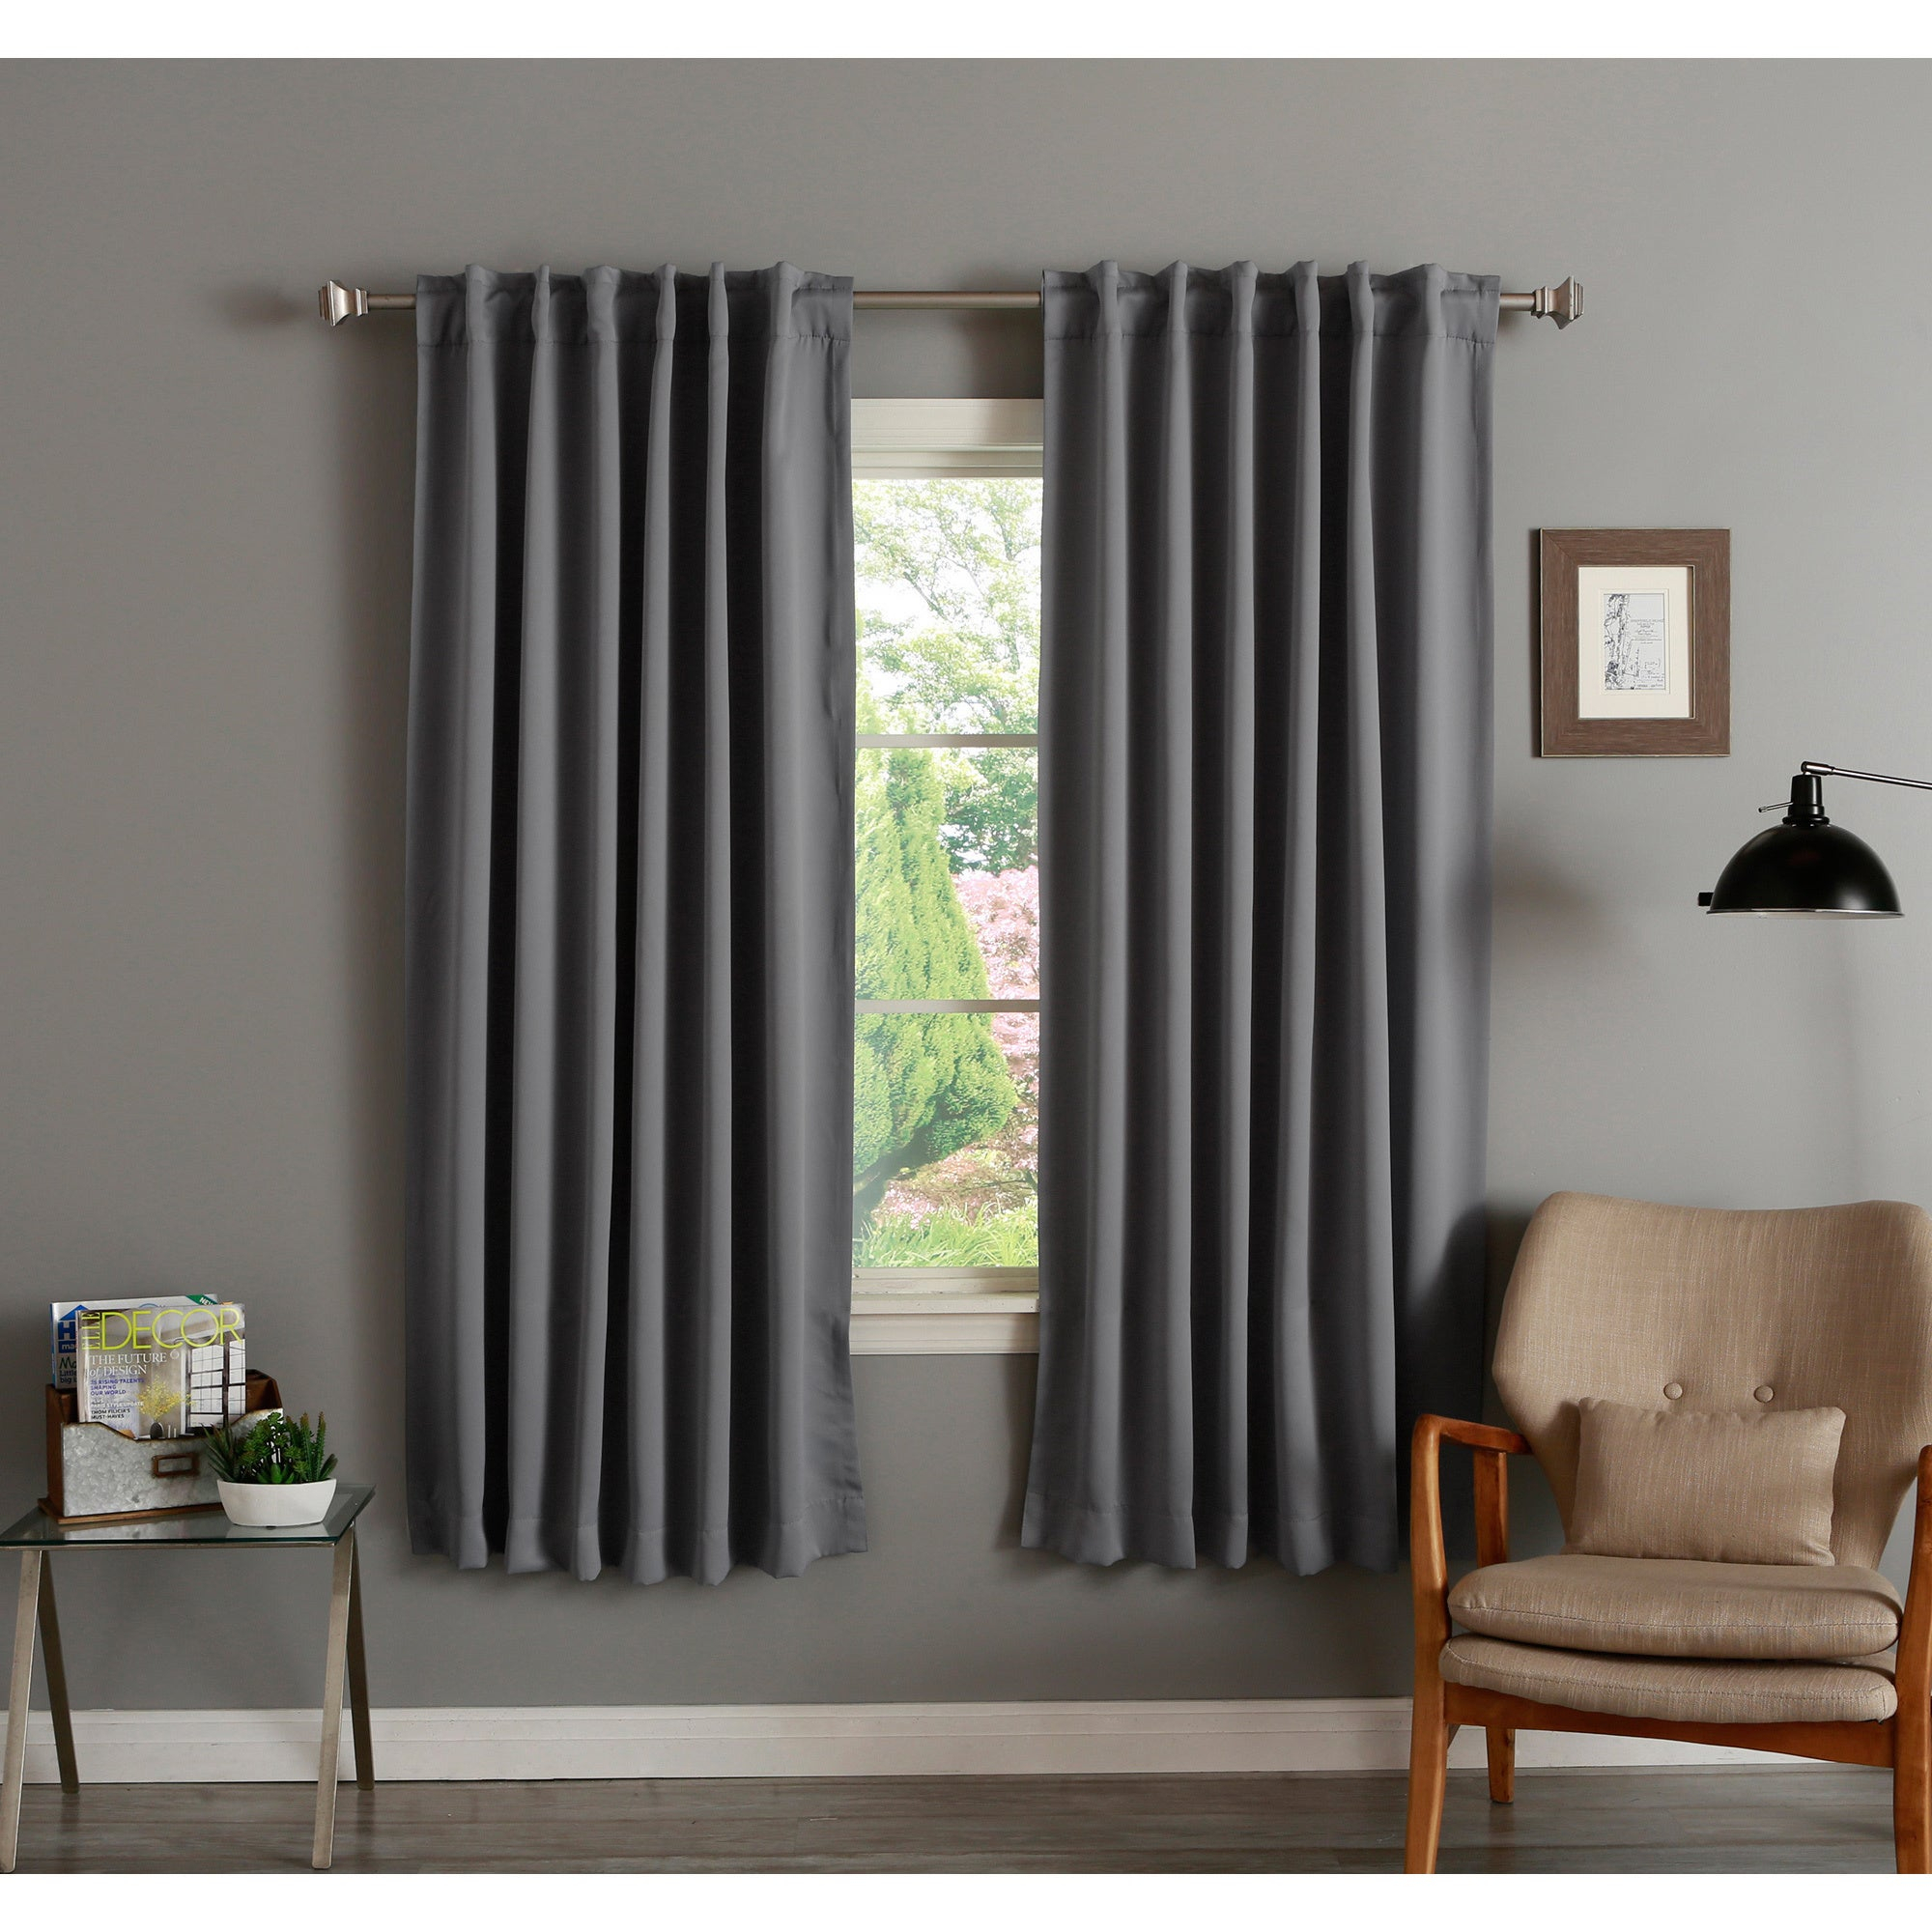 Aurora Home Insulated 72 Inch Thermal Blackout Curtain Panel Pair – 52 X 72 With Thermal Insulated Blackout Curtain Panel Pairs (View 6 of 30)